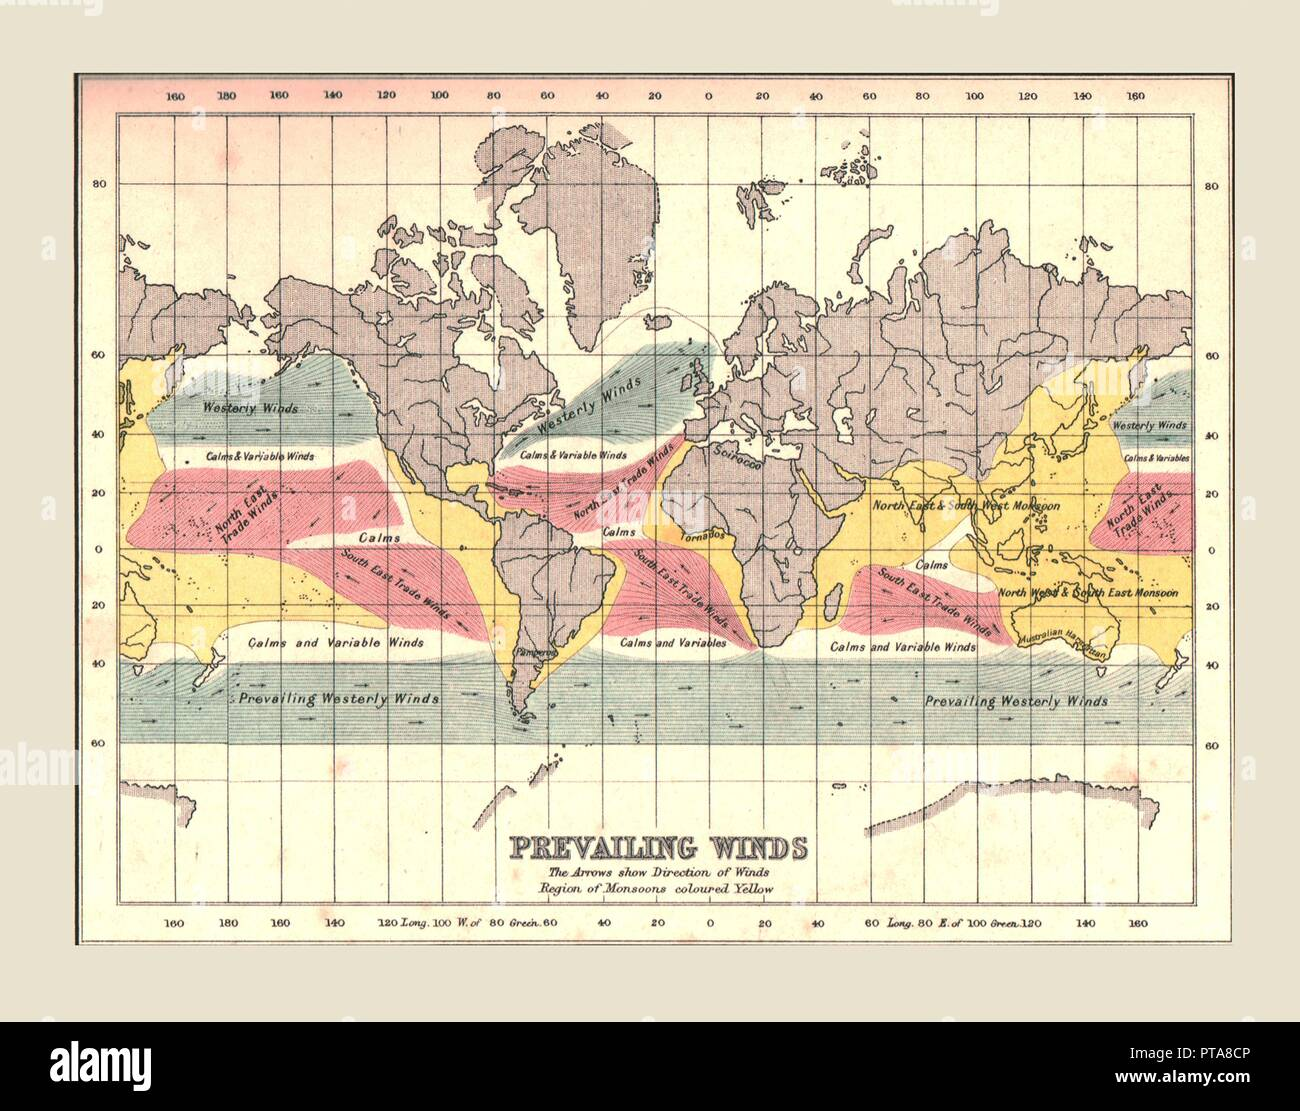 World Map showing Prevailing Winds, 1902. Arrows showing direction ...